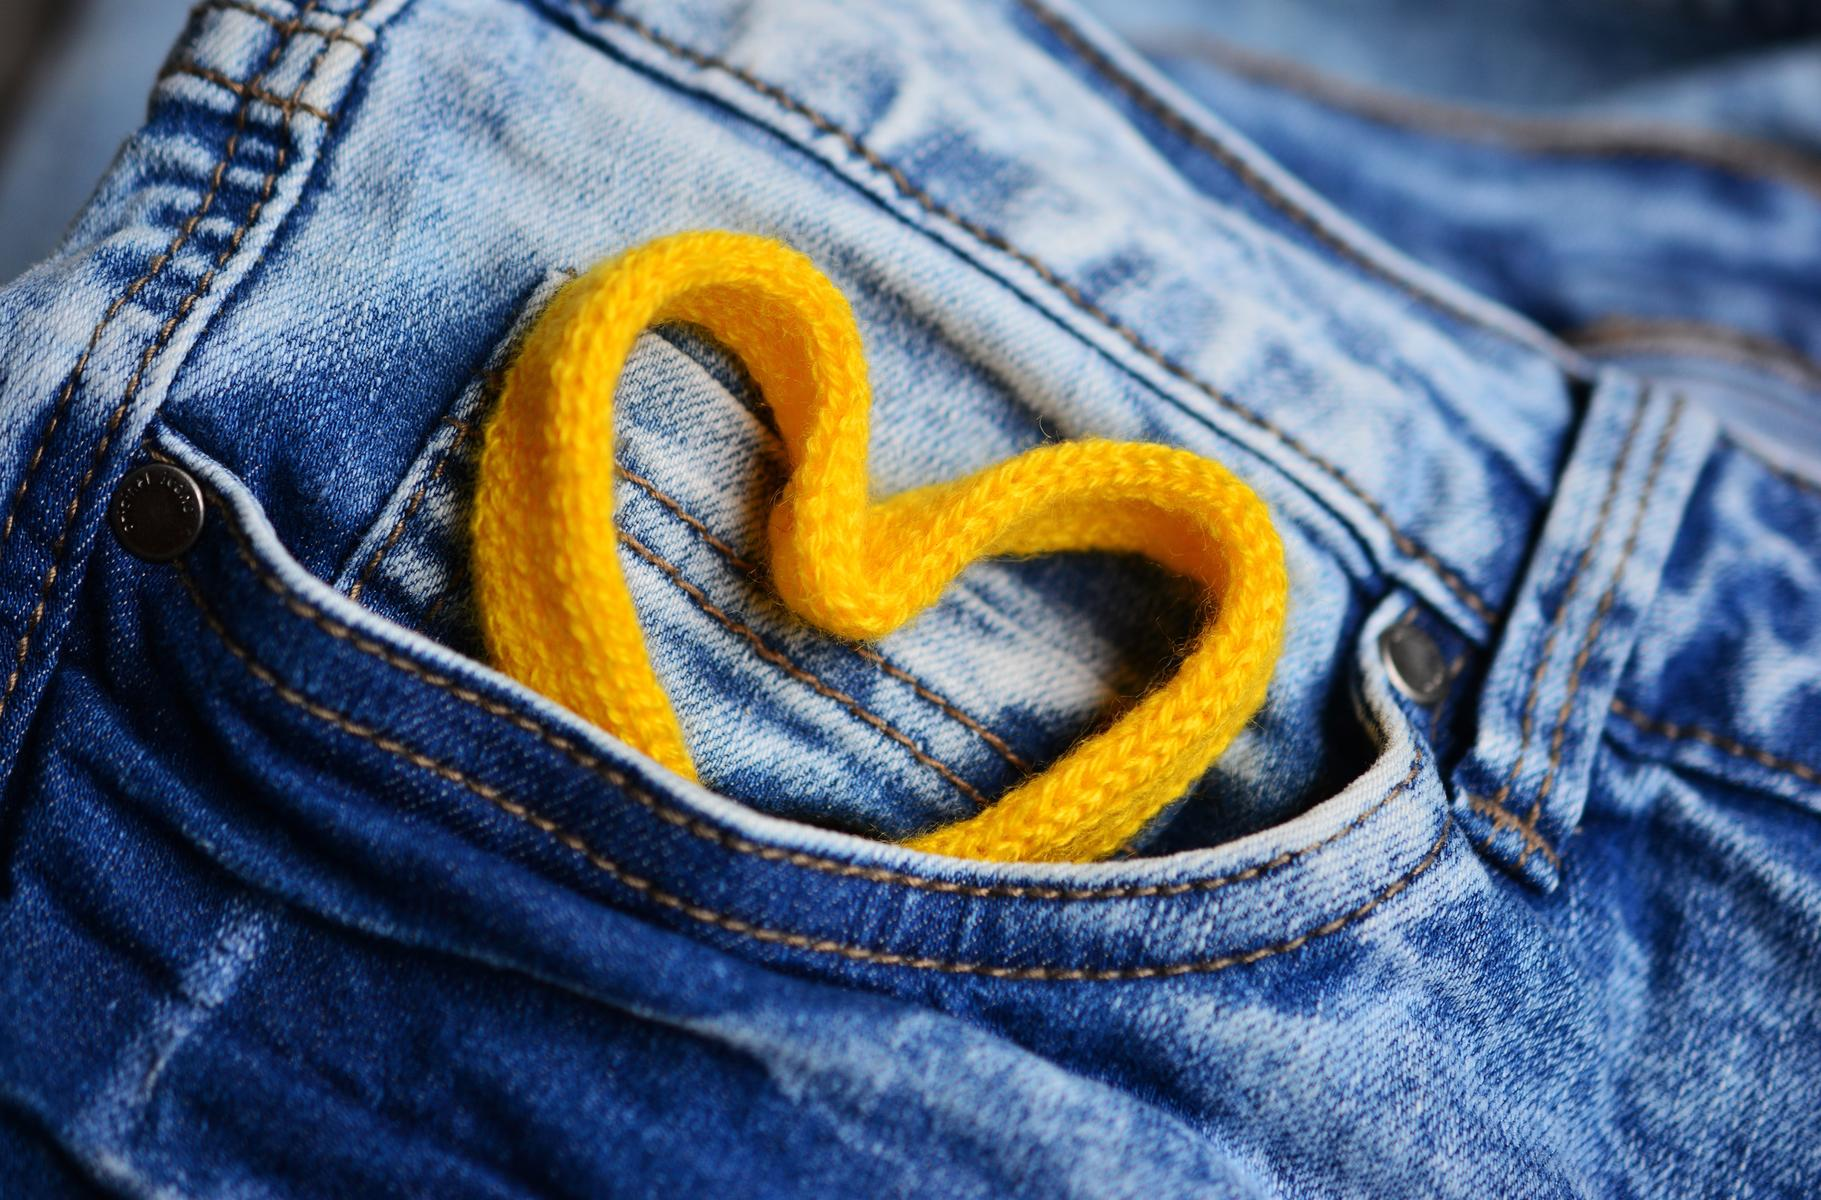 Closeup Jeans Denim Pants Yellow String Heart In Pocket